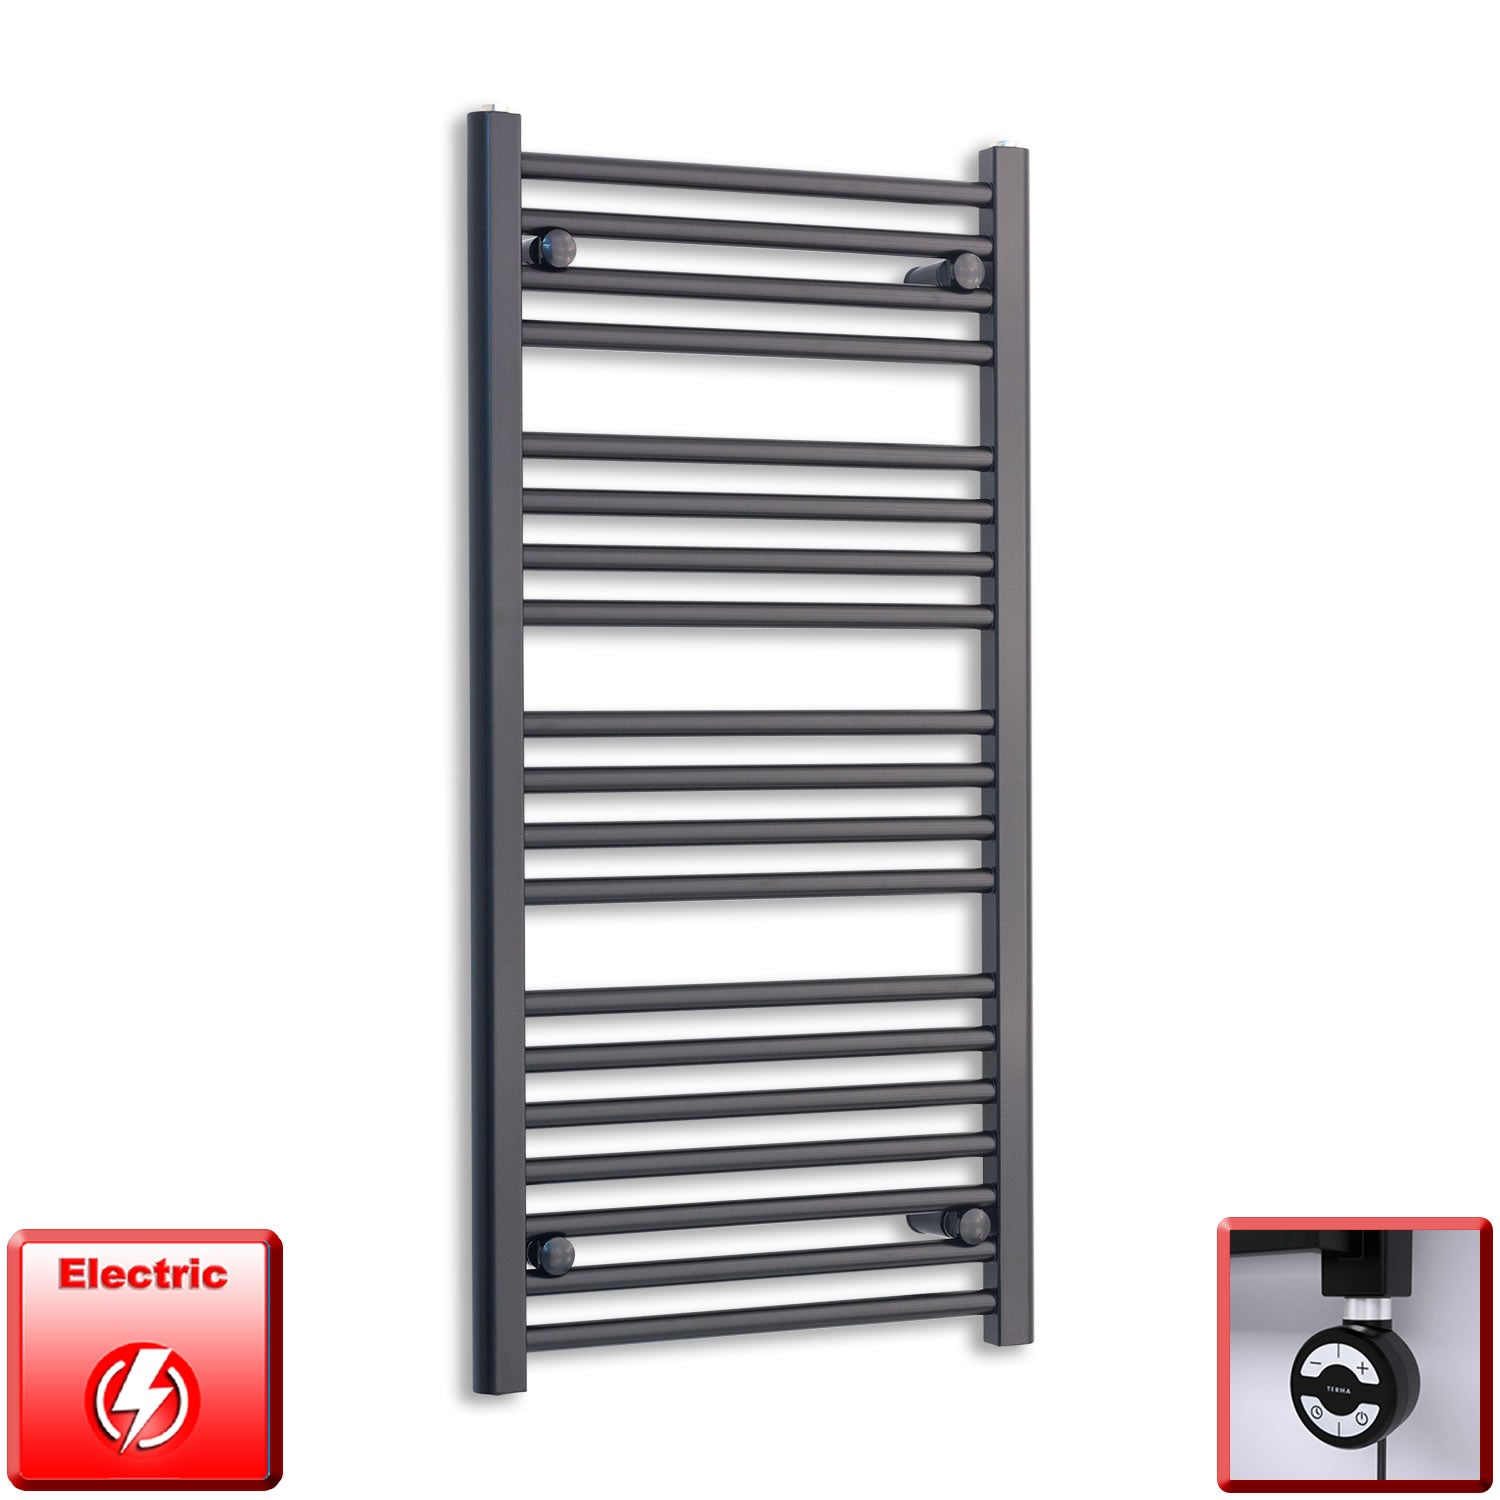 600mm Wide 1000mm High Flat Black Pre-Filled Electric Heated Towel Rail Radiator HTR,MOA Thermostatic Element